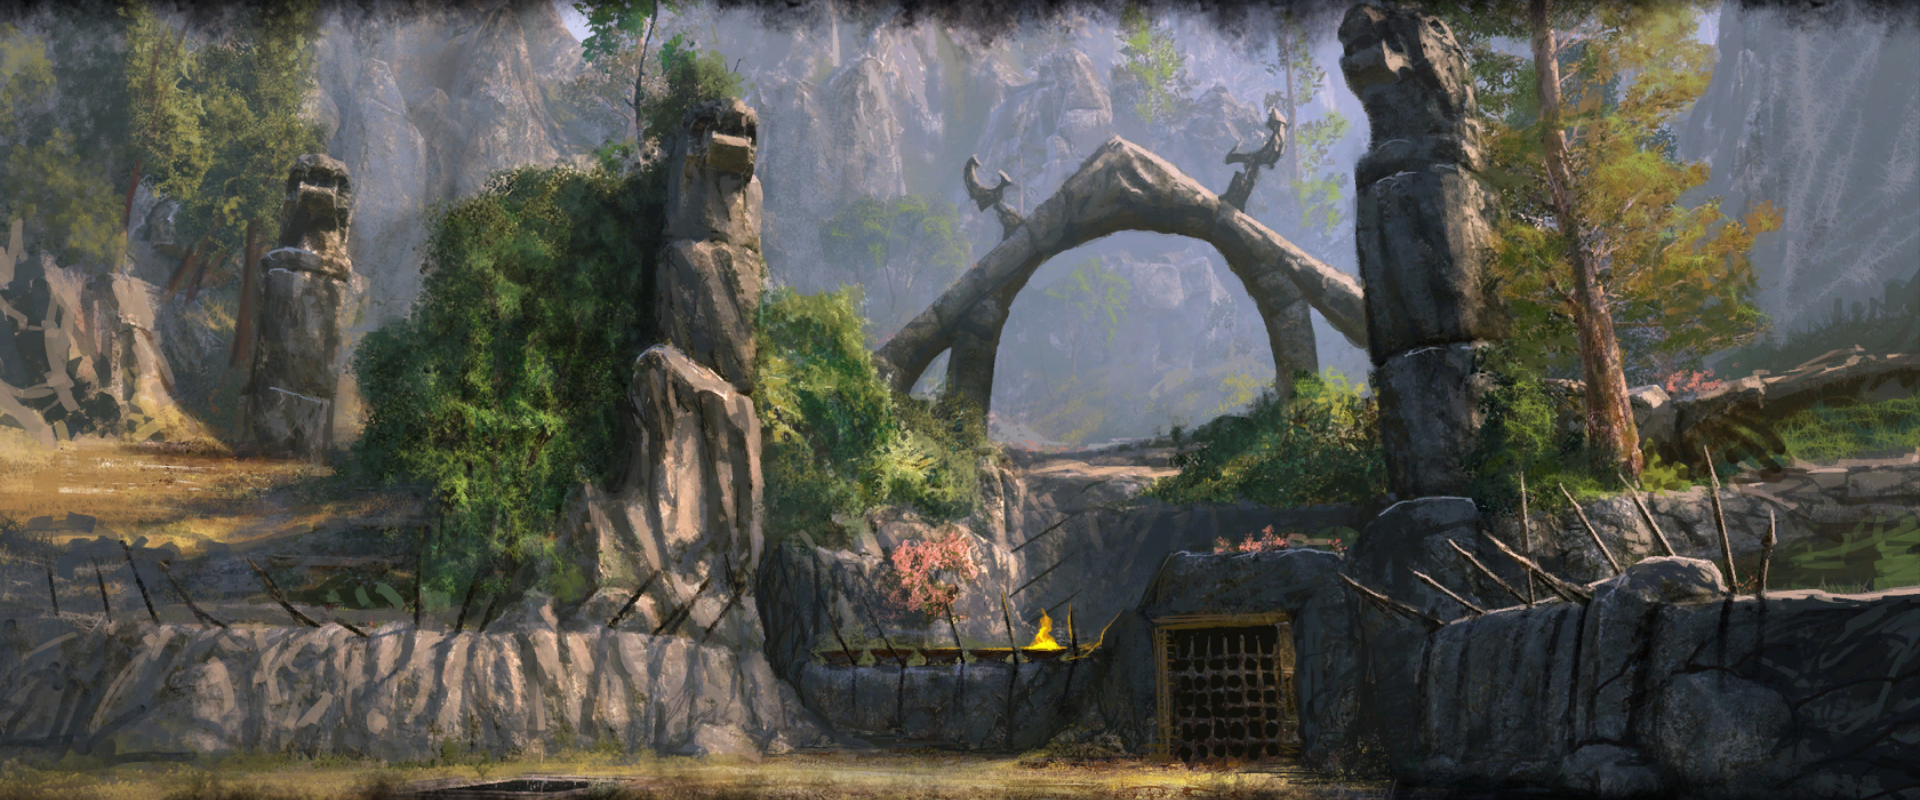 Dragonstar Arena | Elder Scrolls | FANDOM powered by Wikia